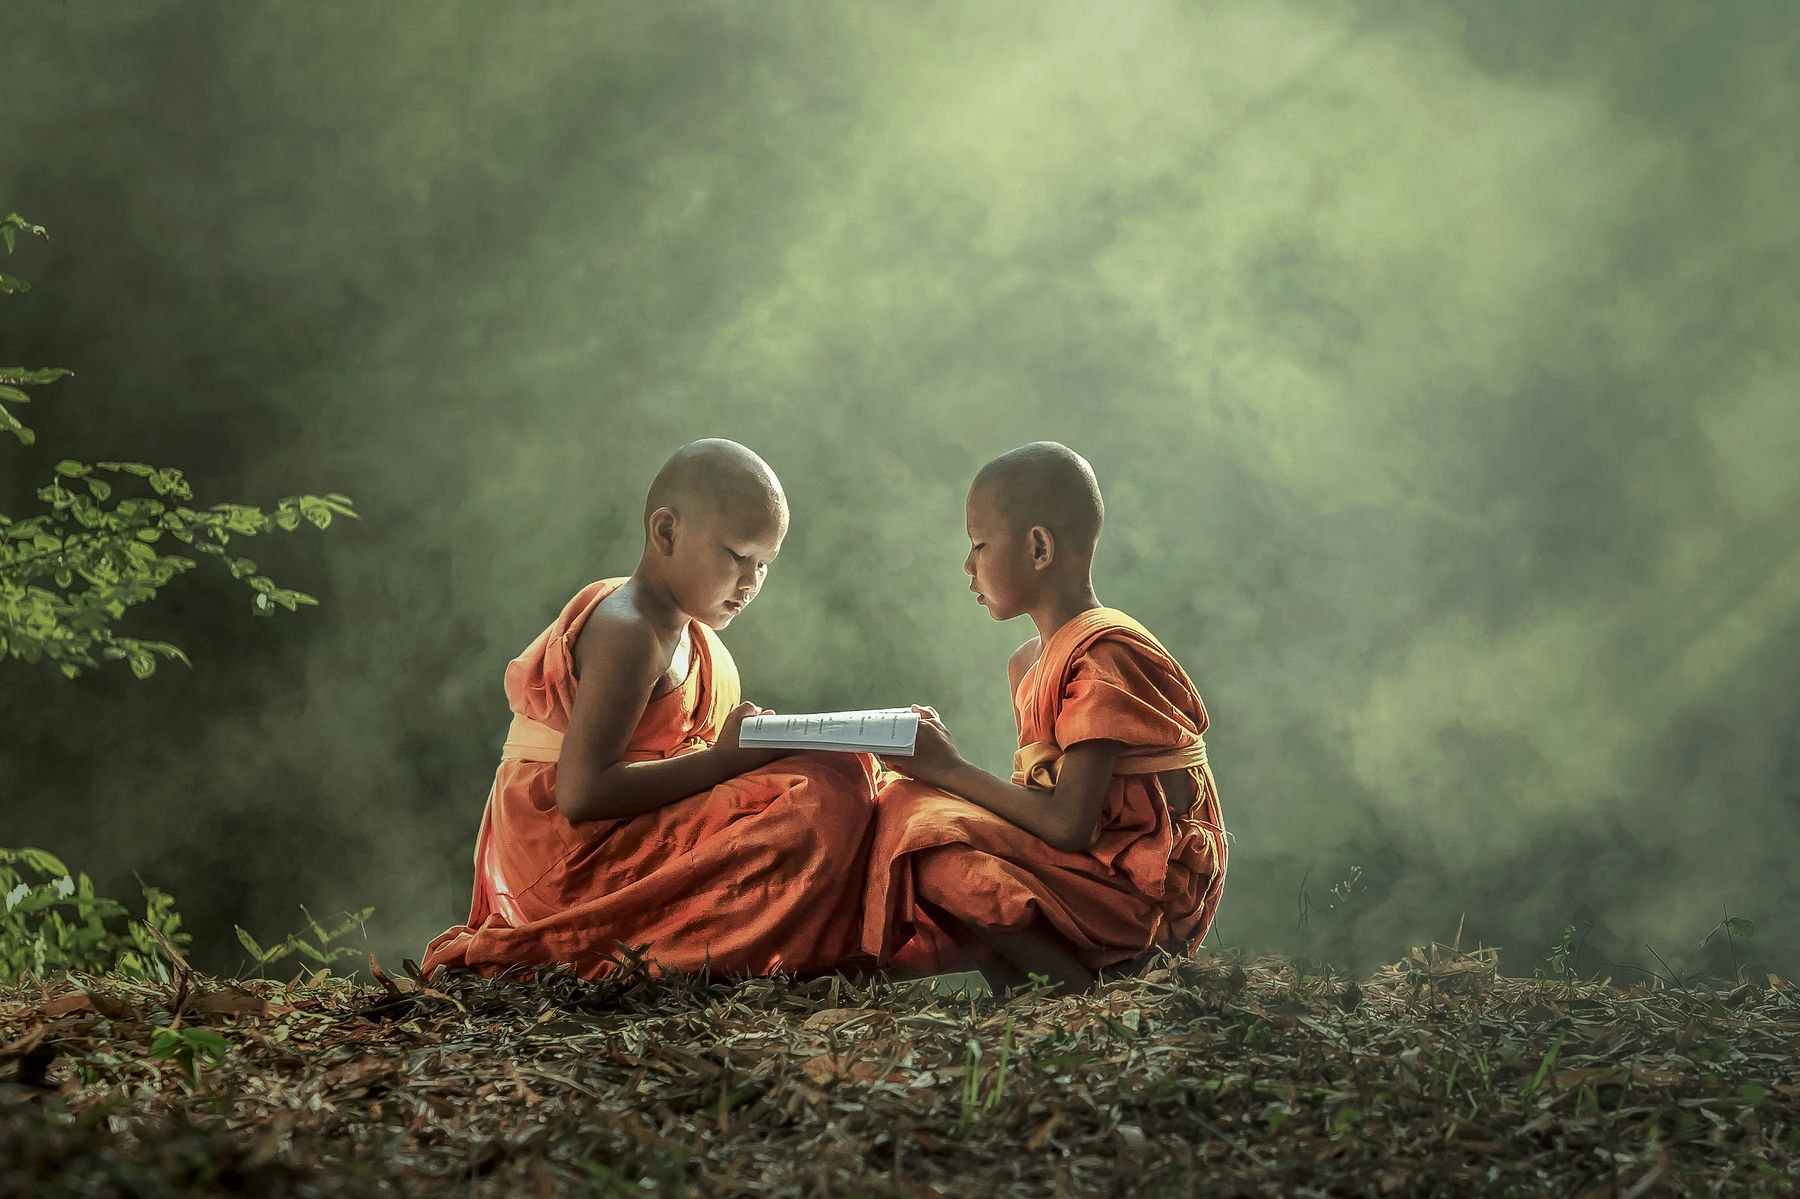 35PHOTO - Jakkree Thampitakkull - Young Buddhist monk reading.